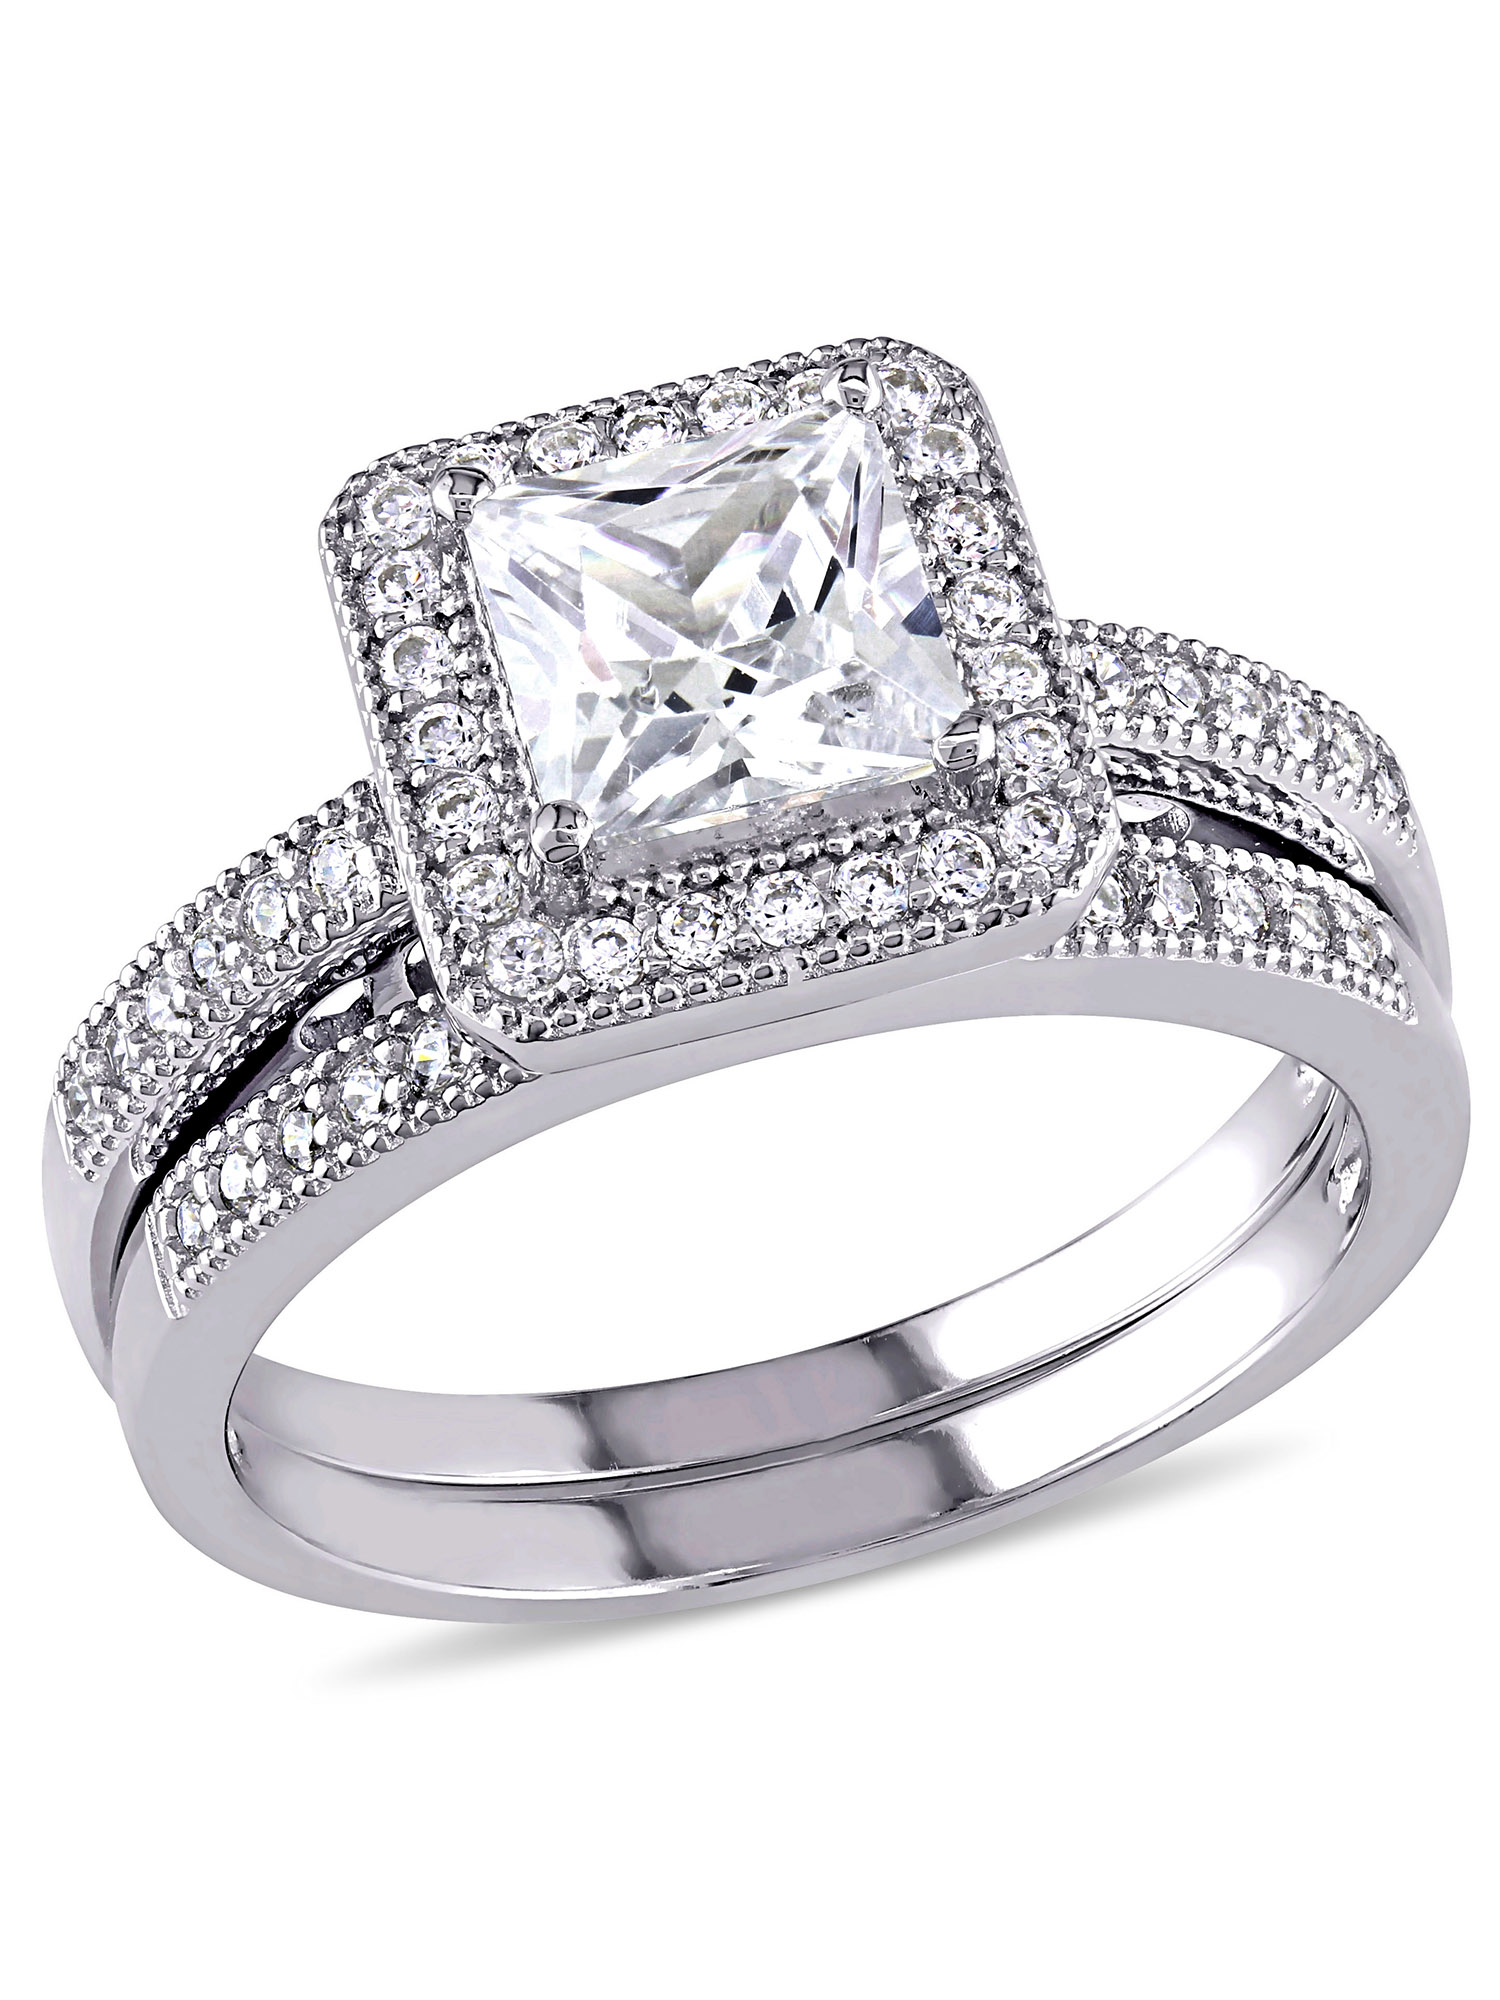 Miabella 2-1/3 Carat T.G.W. Princess and Round-Cut Cubic Zirconia Sterling Silver Halo Bridal Set